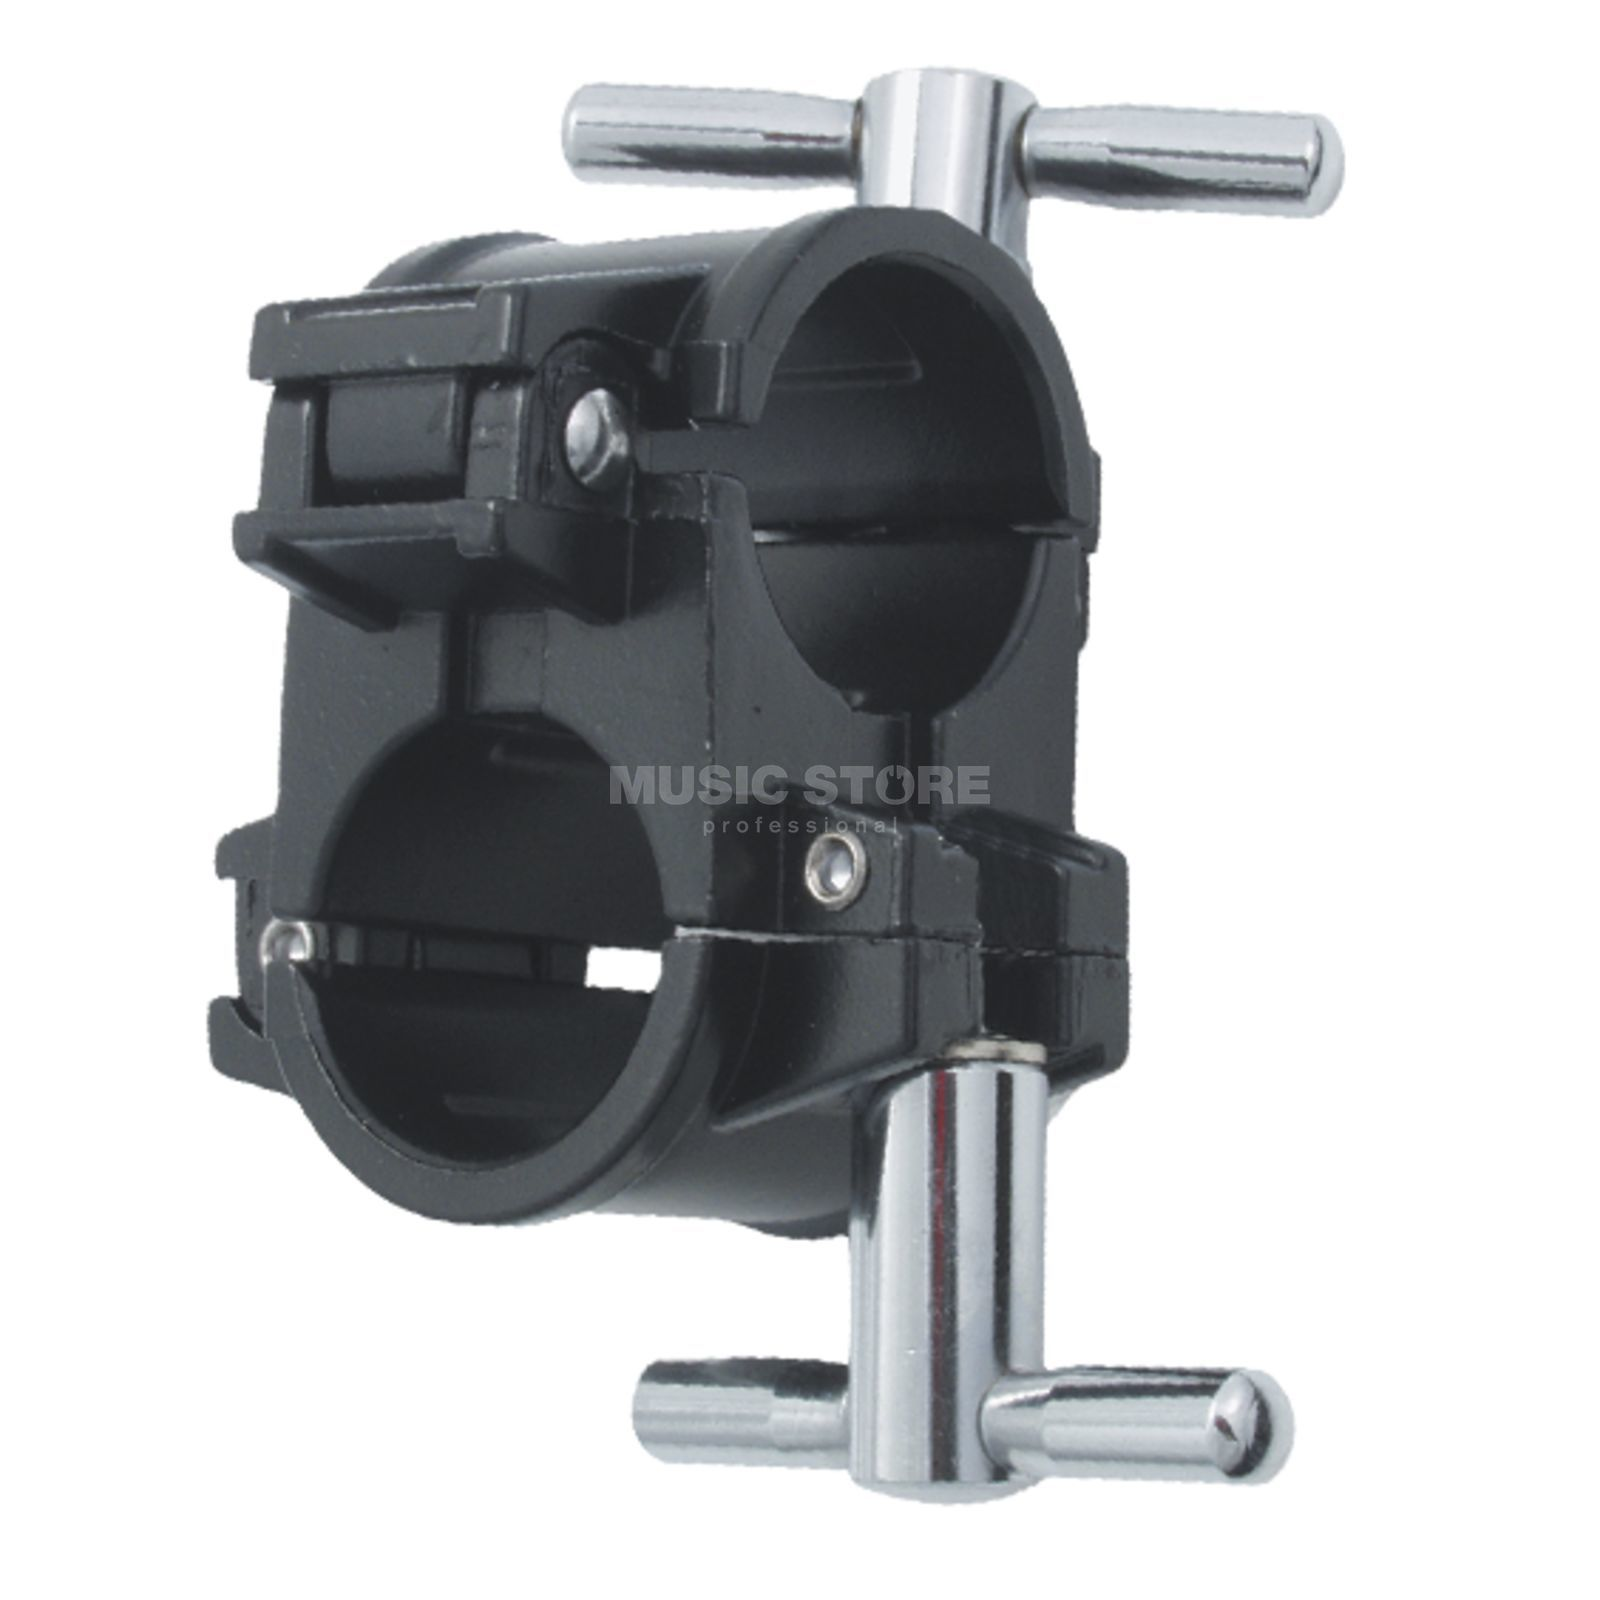 Gibraltar Angle Clamp SC-GPRRA, Power series Изображение товара